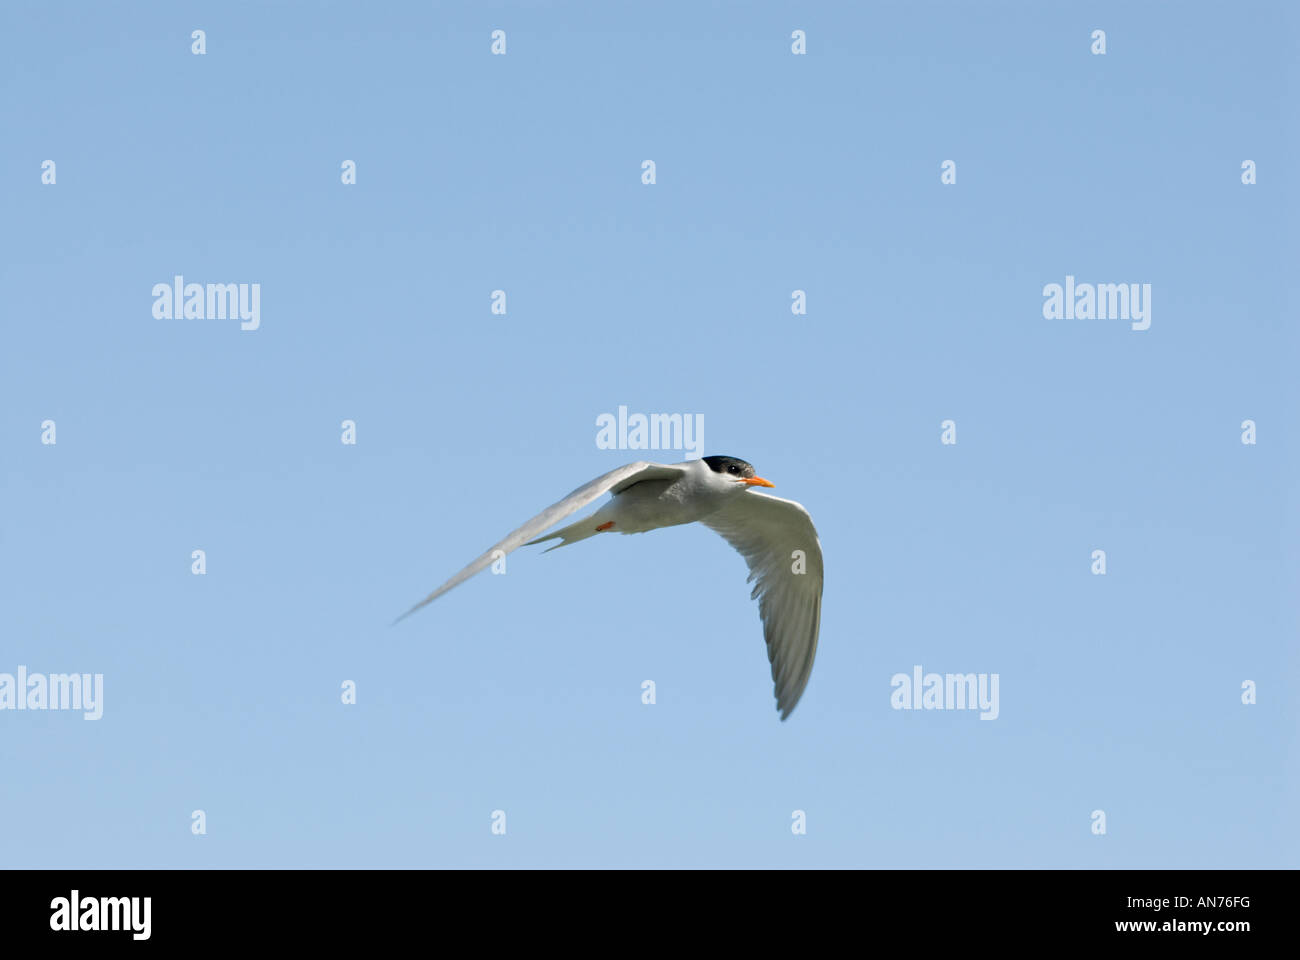 Black-Fronted Tern Sterna albostriata [Laridae] over the Ahuriri River - Stock Image